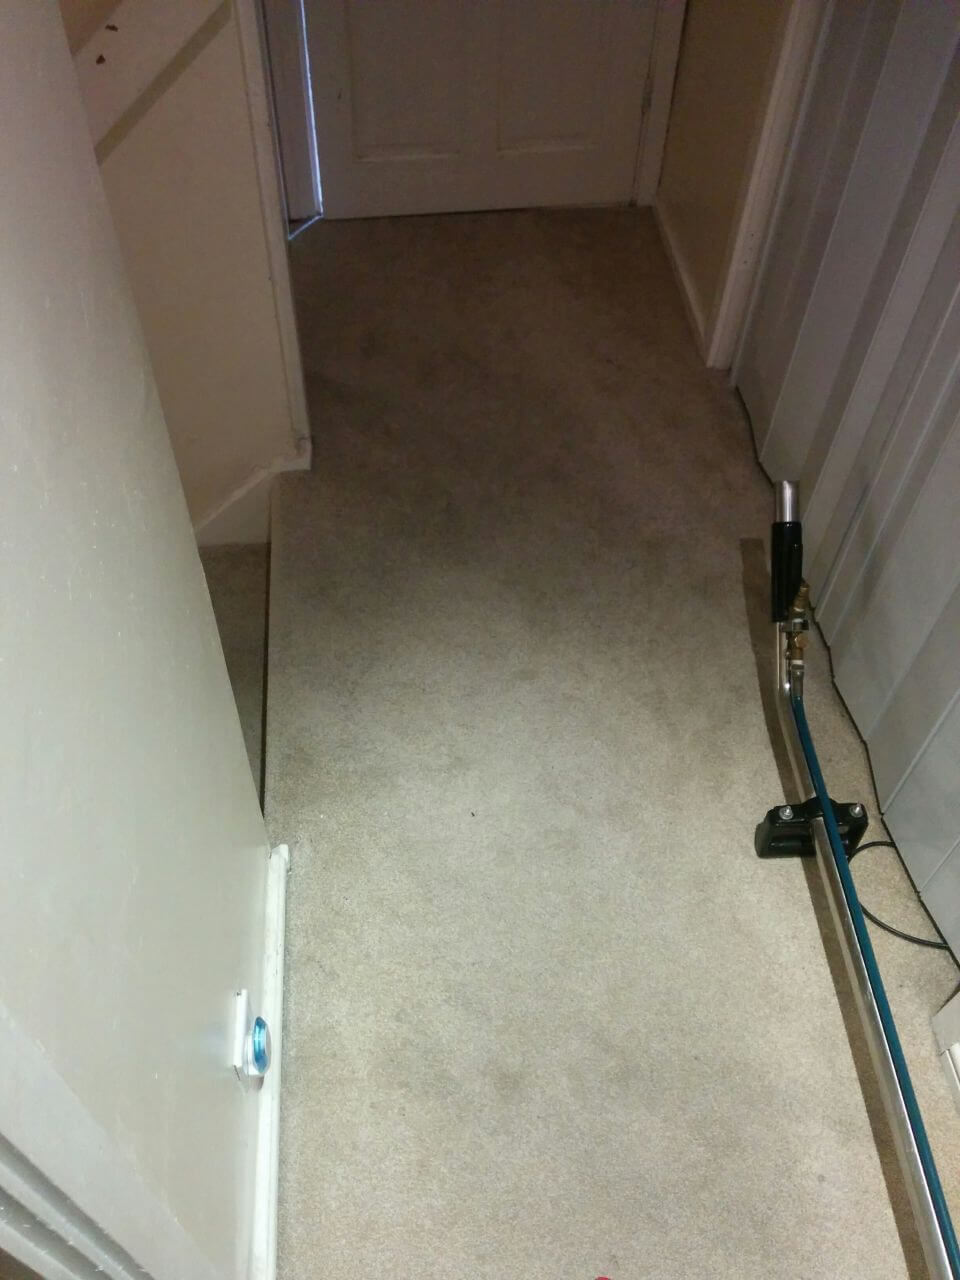 Anerley clean carpet